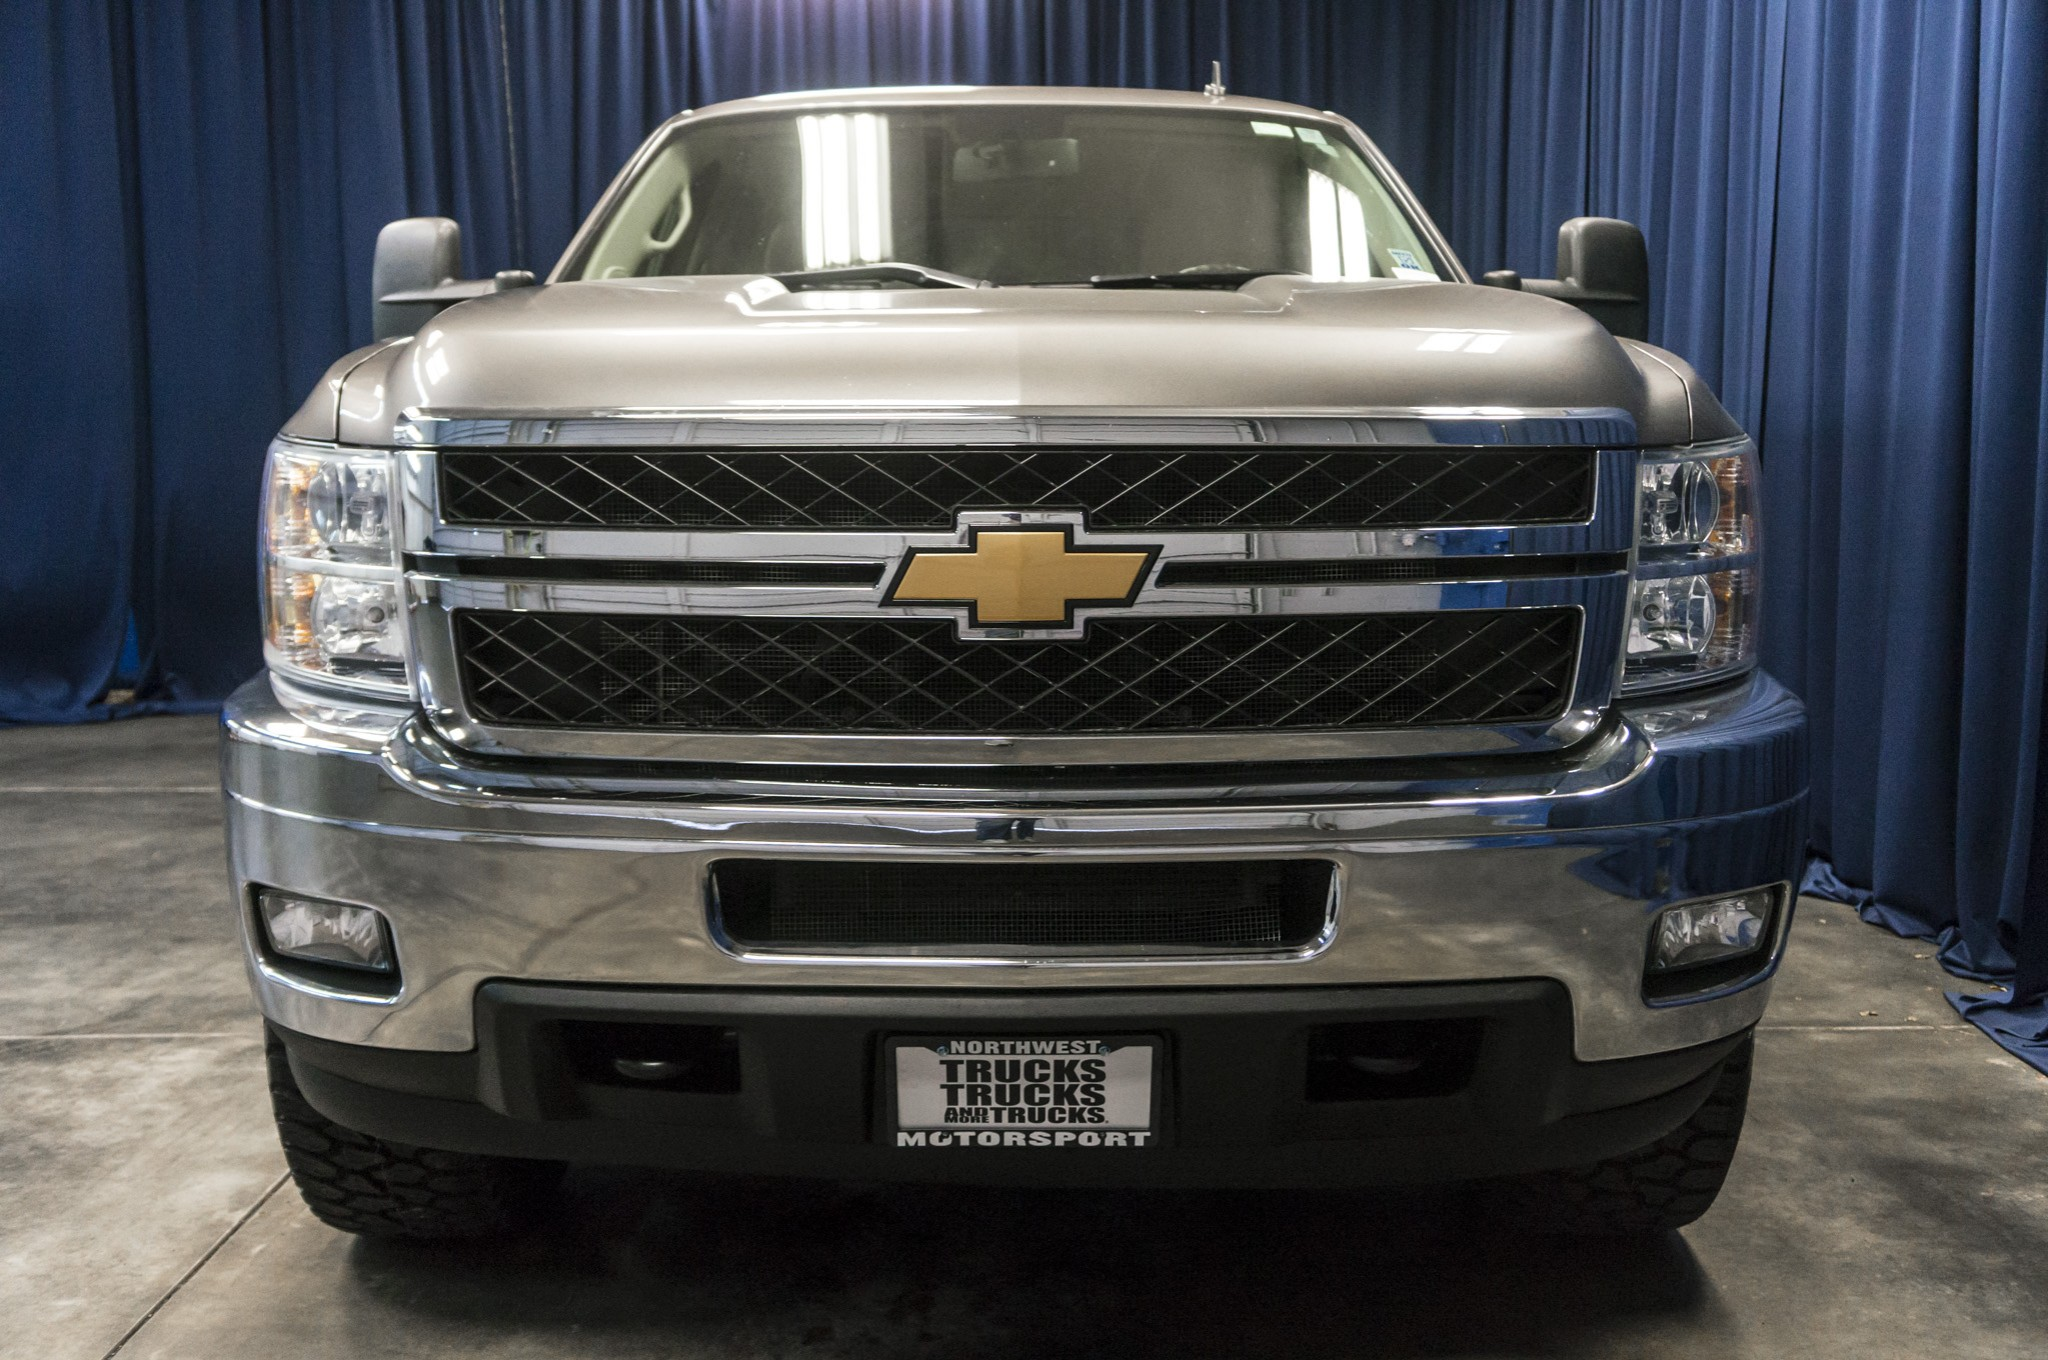 used lifted 2014 chevrolet silverado 2500hd lt 4x4 truck for sale 37131. Black Bedroom Furniture Sets. Home Design Ideas